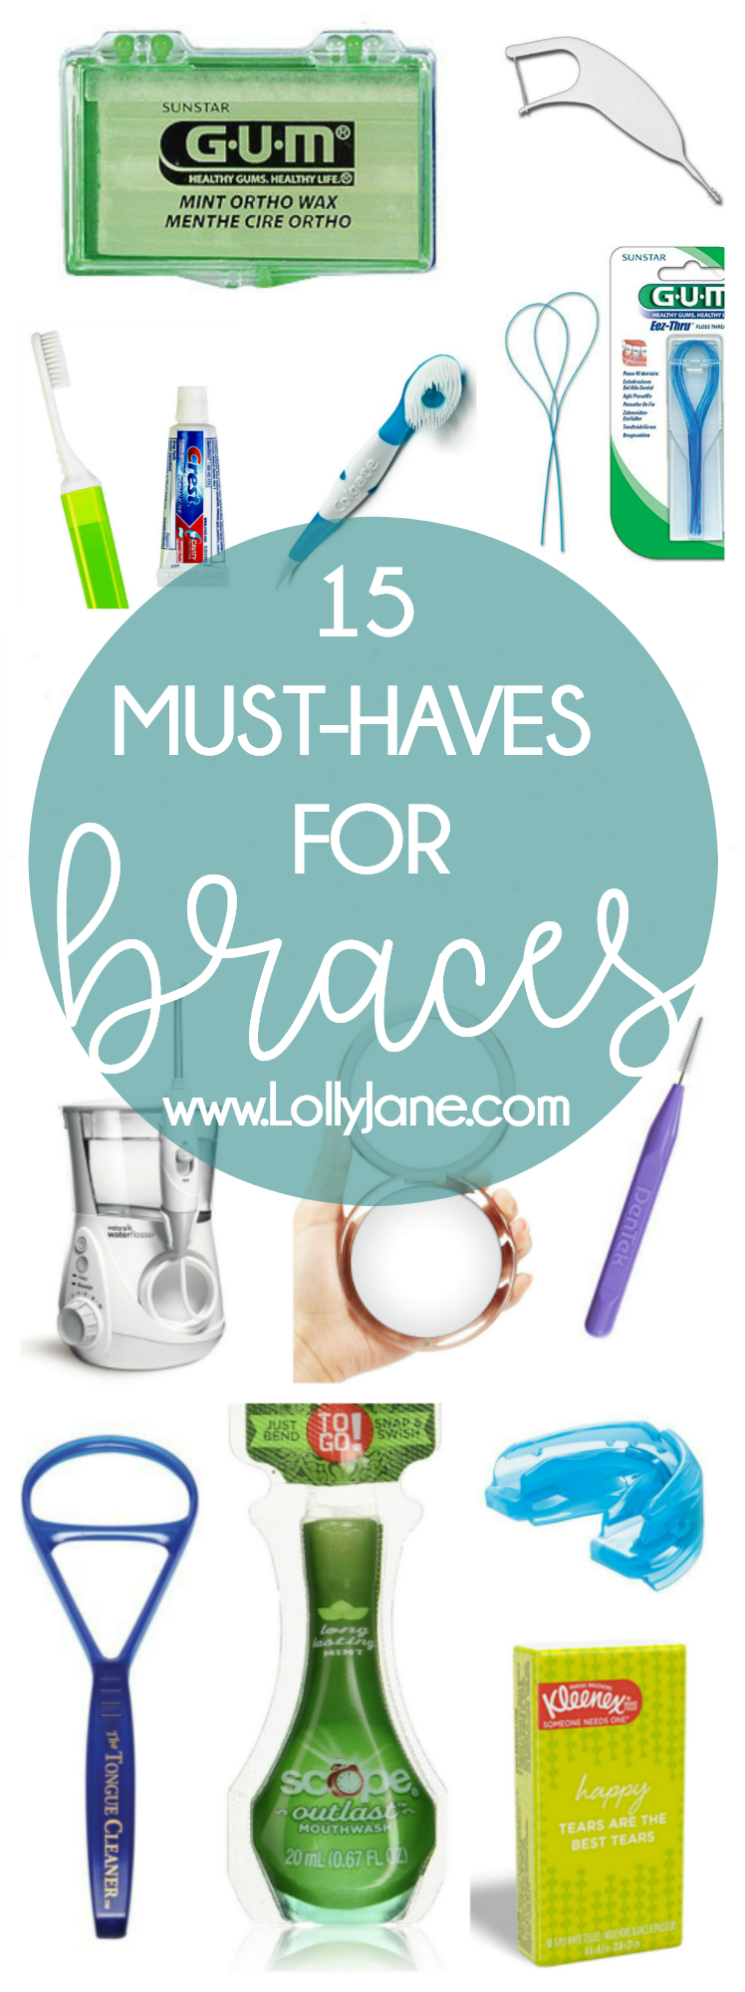 15 must-haves for braces!! Check out our essentials for new braces users! We have adult braces and love this collection of must-have items for braces, it's the best braces survival guide out there!